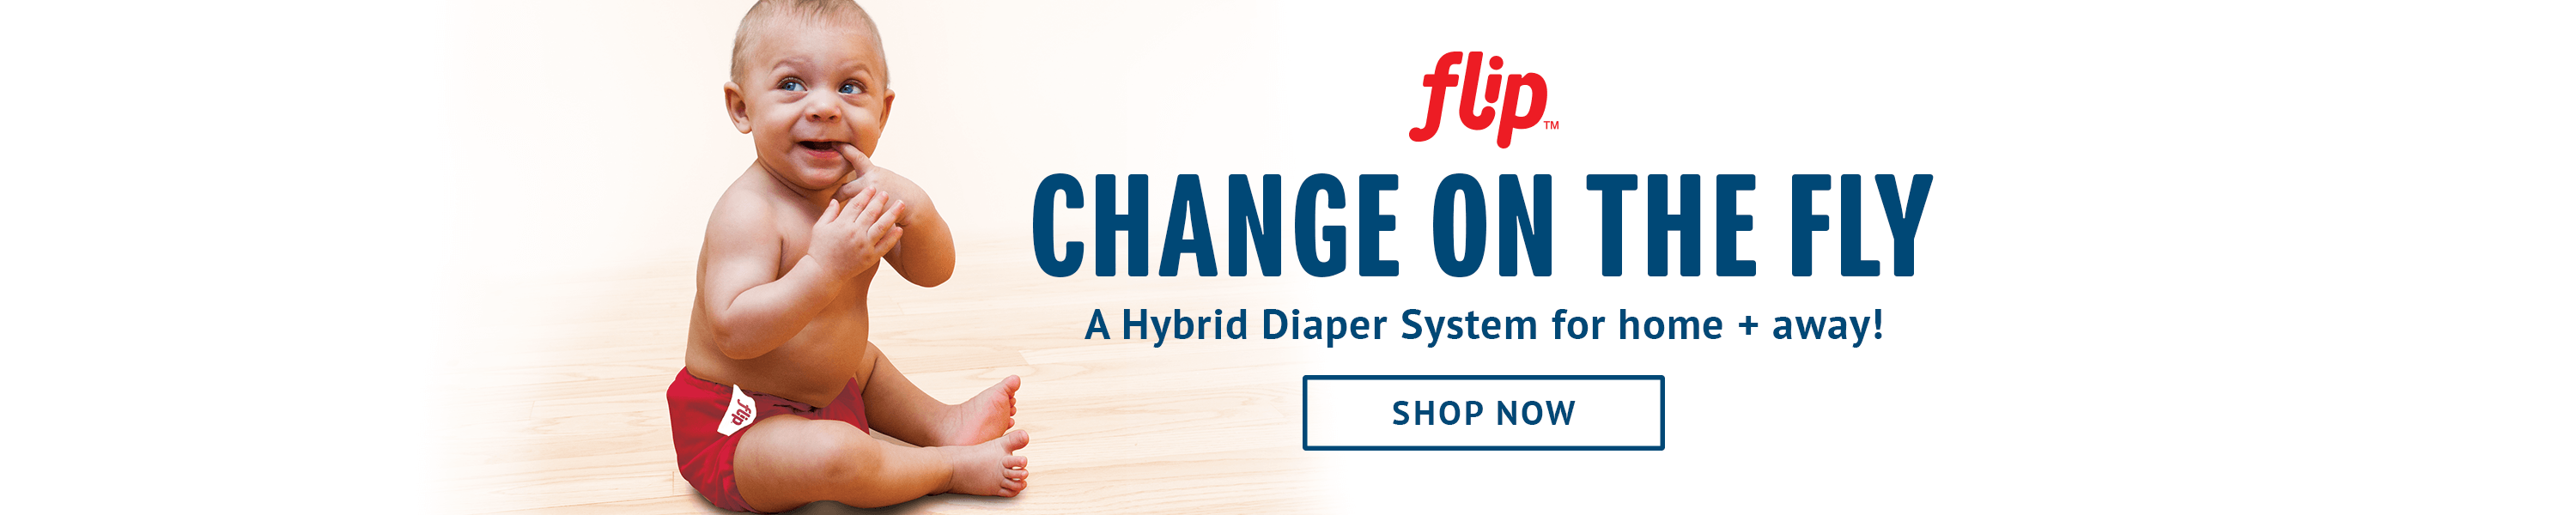 Image of Flip! Change on the Fly. A Hybrid Diaper System for home and away!